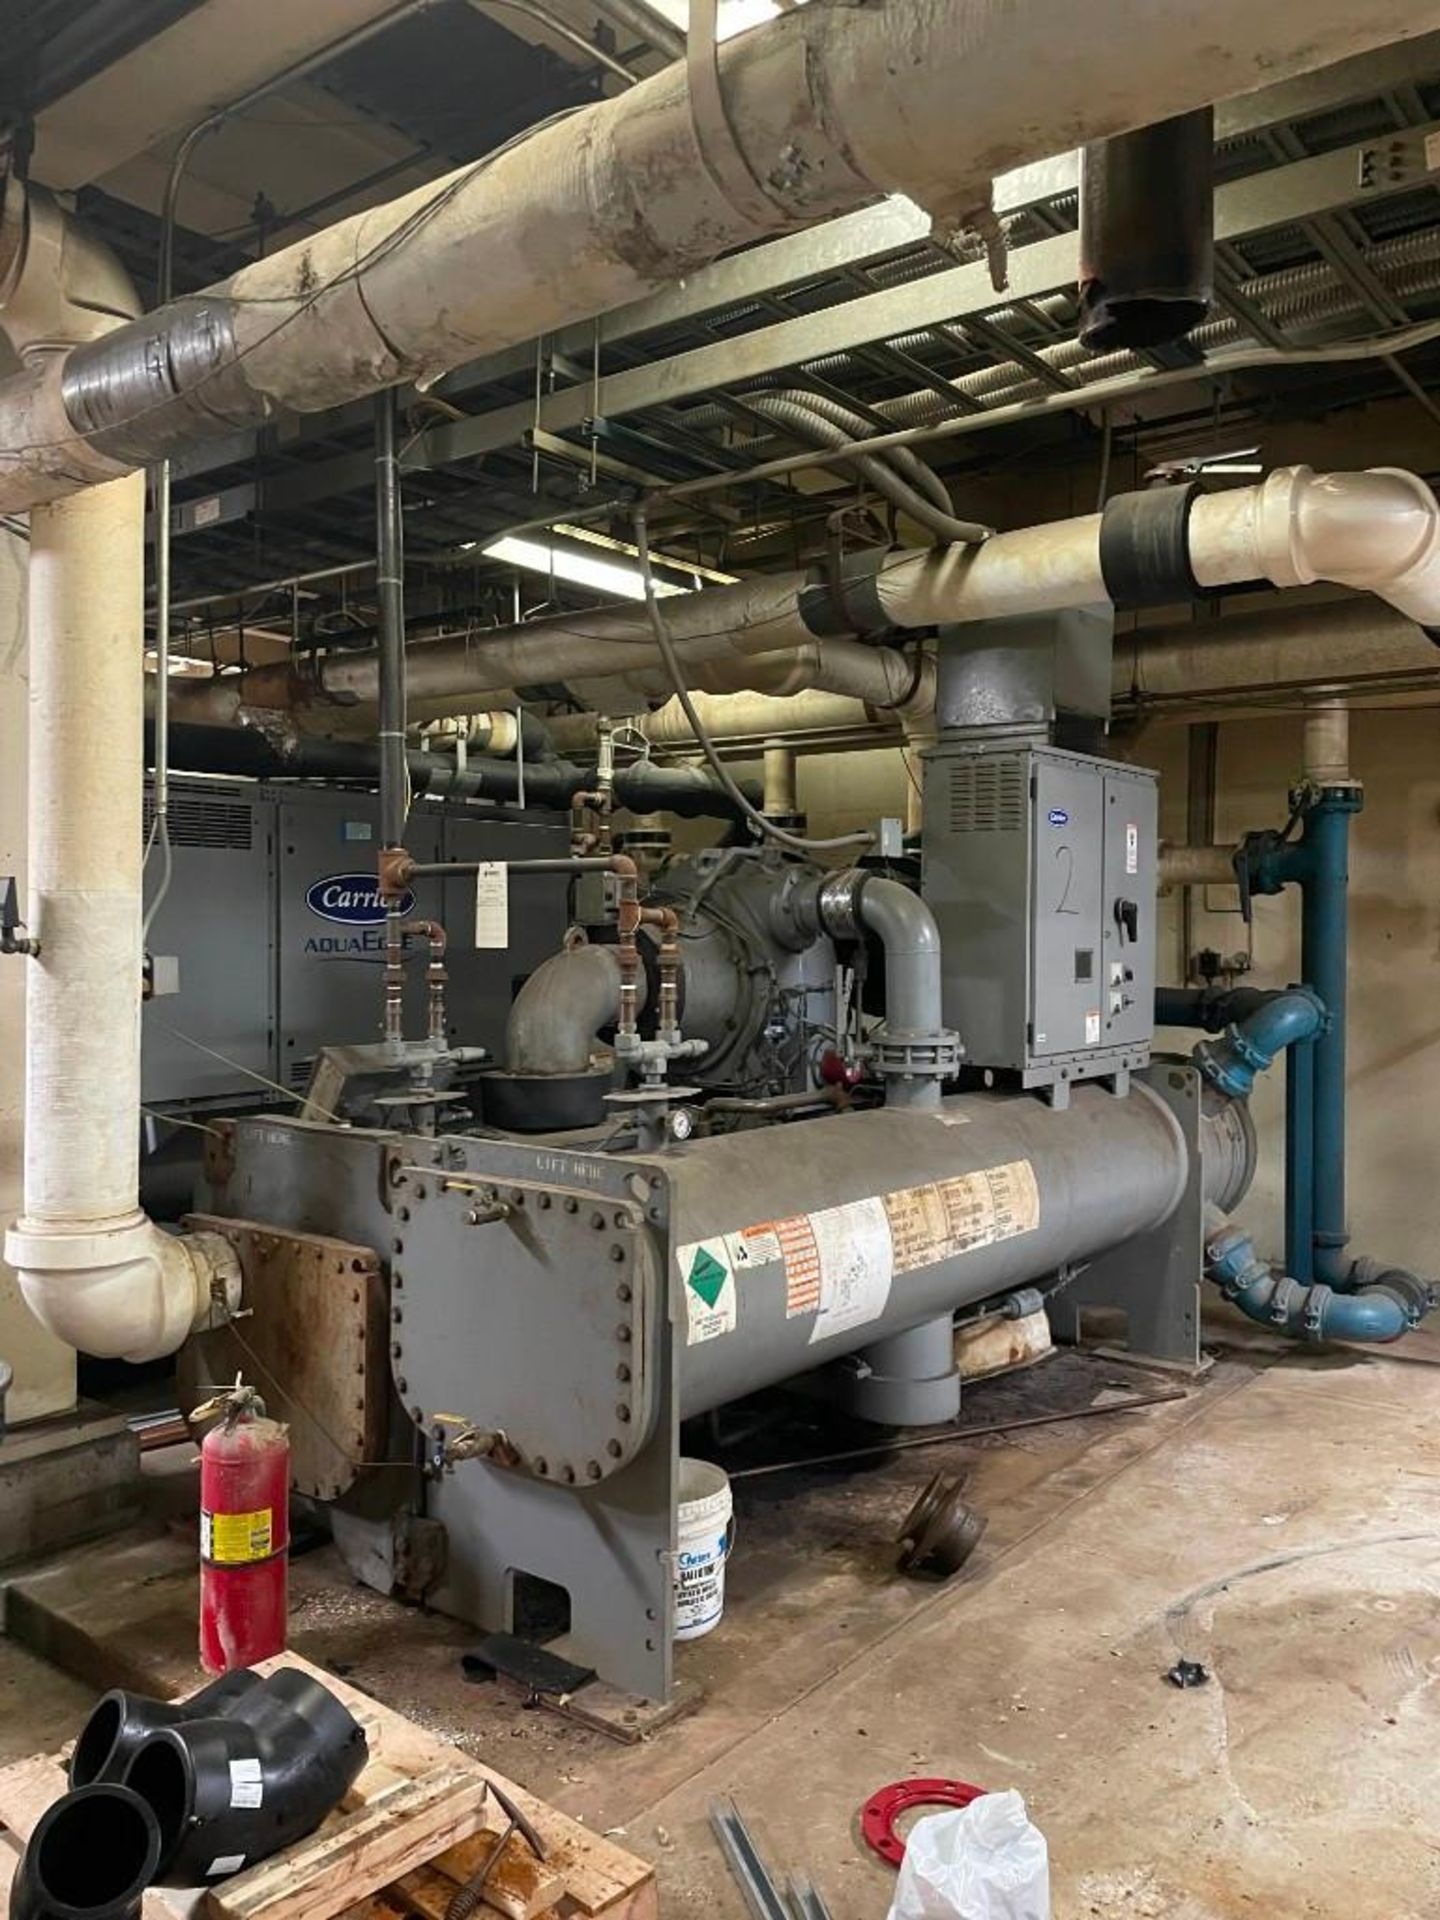 Carrier Aqua Edge 19XRV Water Chiller with Centrifugal Compressor - Image 3 of 9